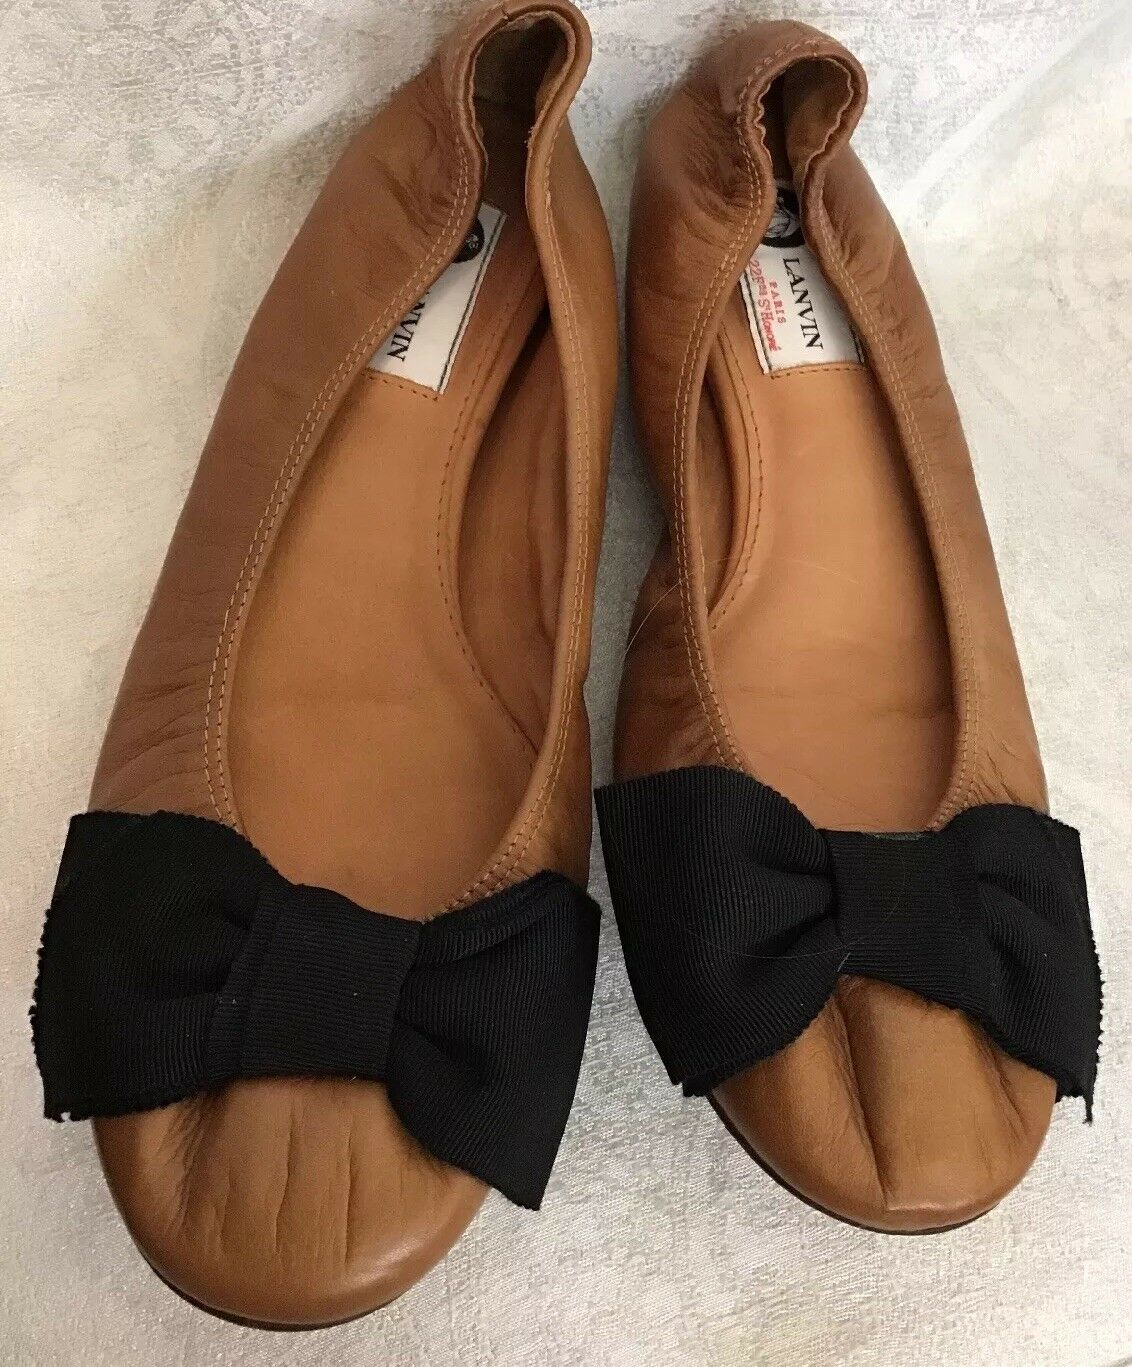 Lanvin Shoe Caramel Leather Flat Black File Bow 8.50 Size 40 Fits Size 8.50 Bow -9 7a2447